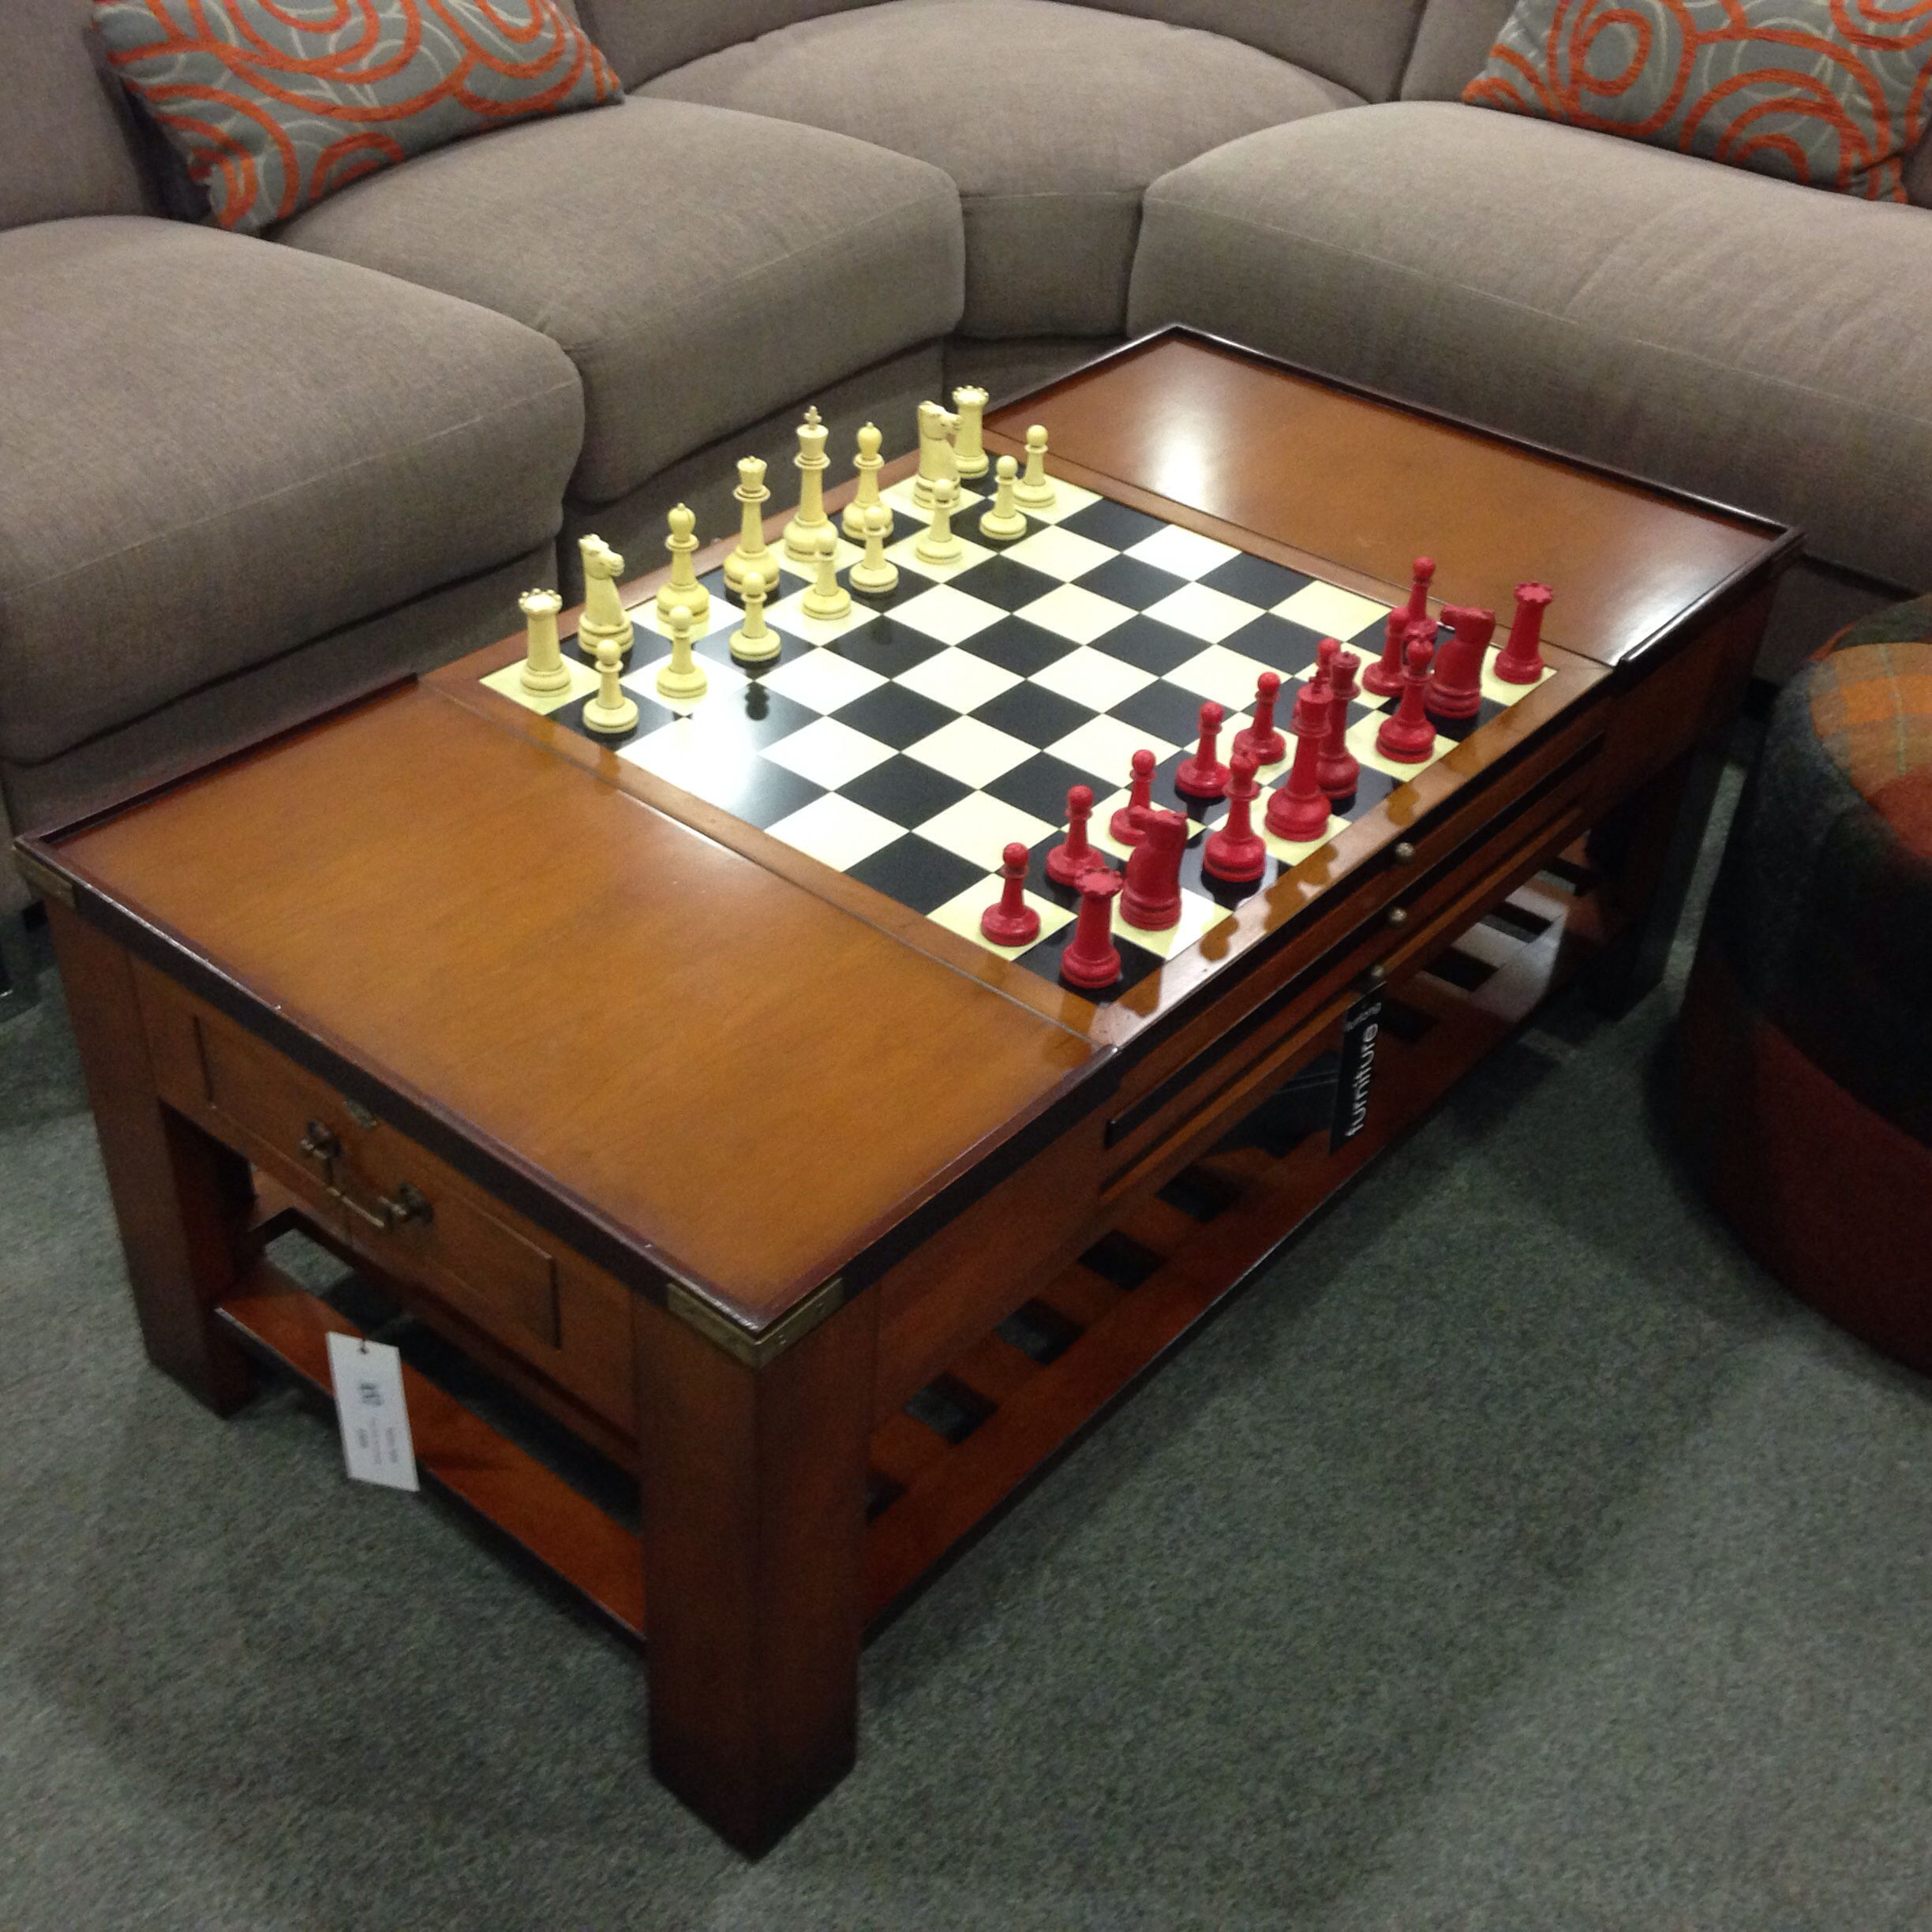 The best chess board backgammon card playing coffee table ever